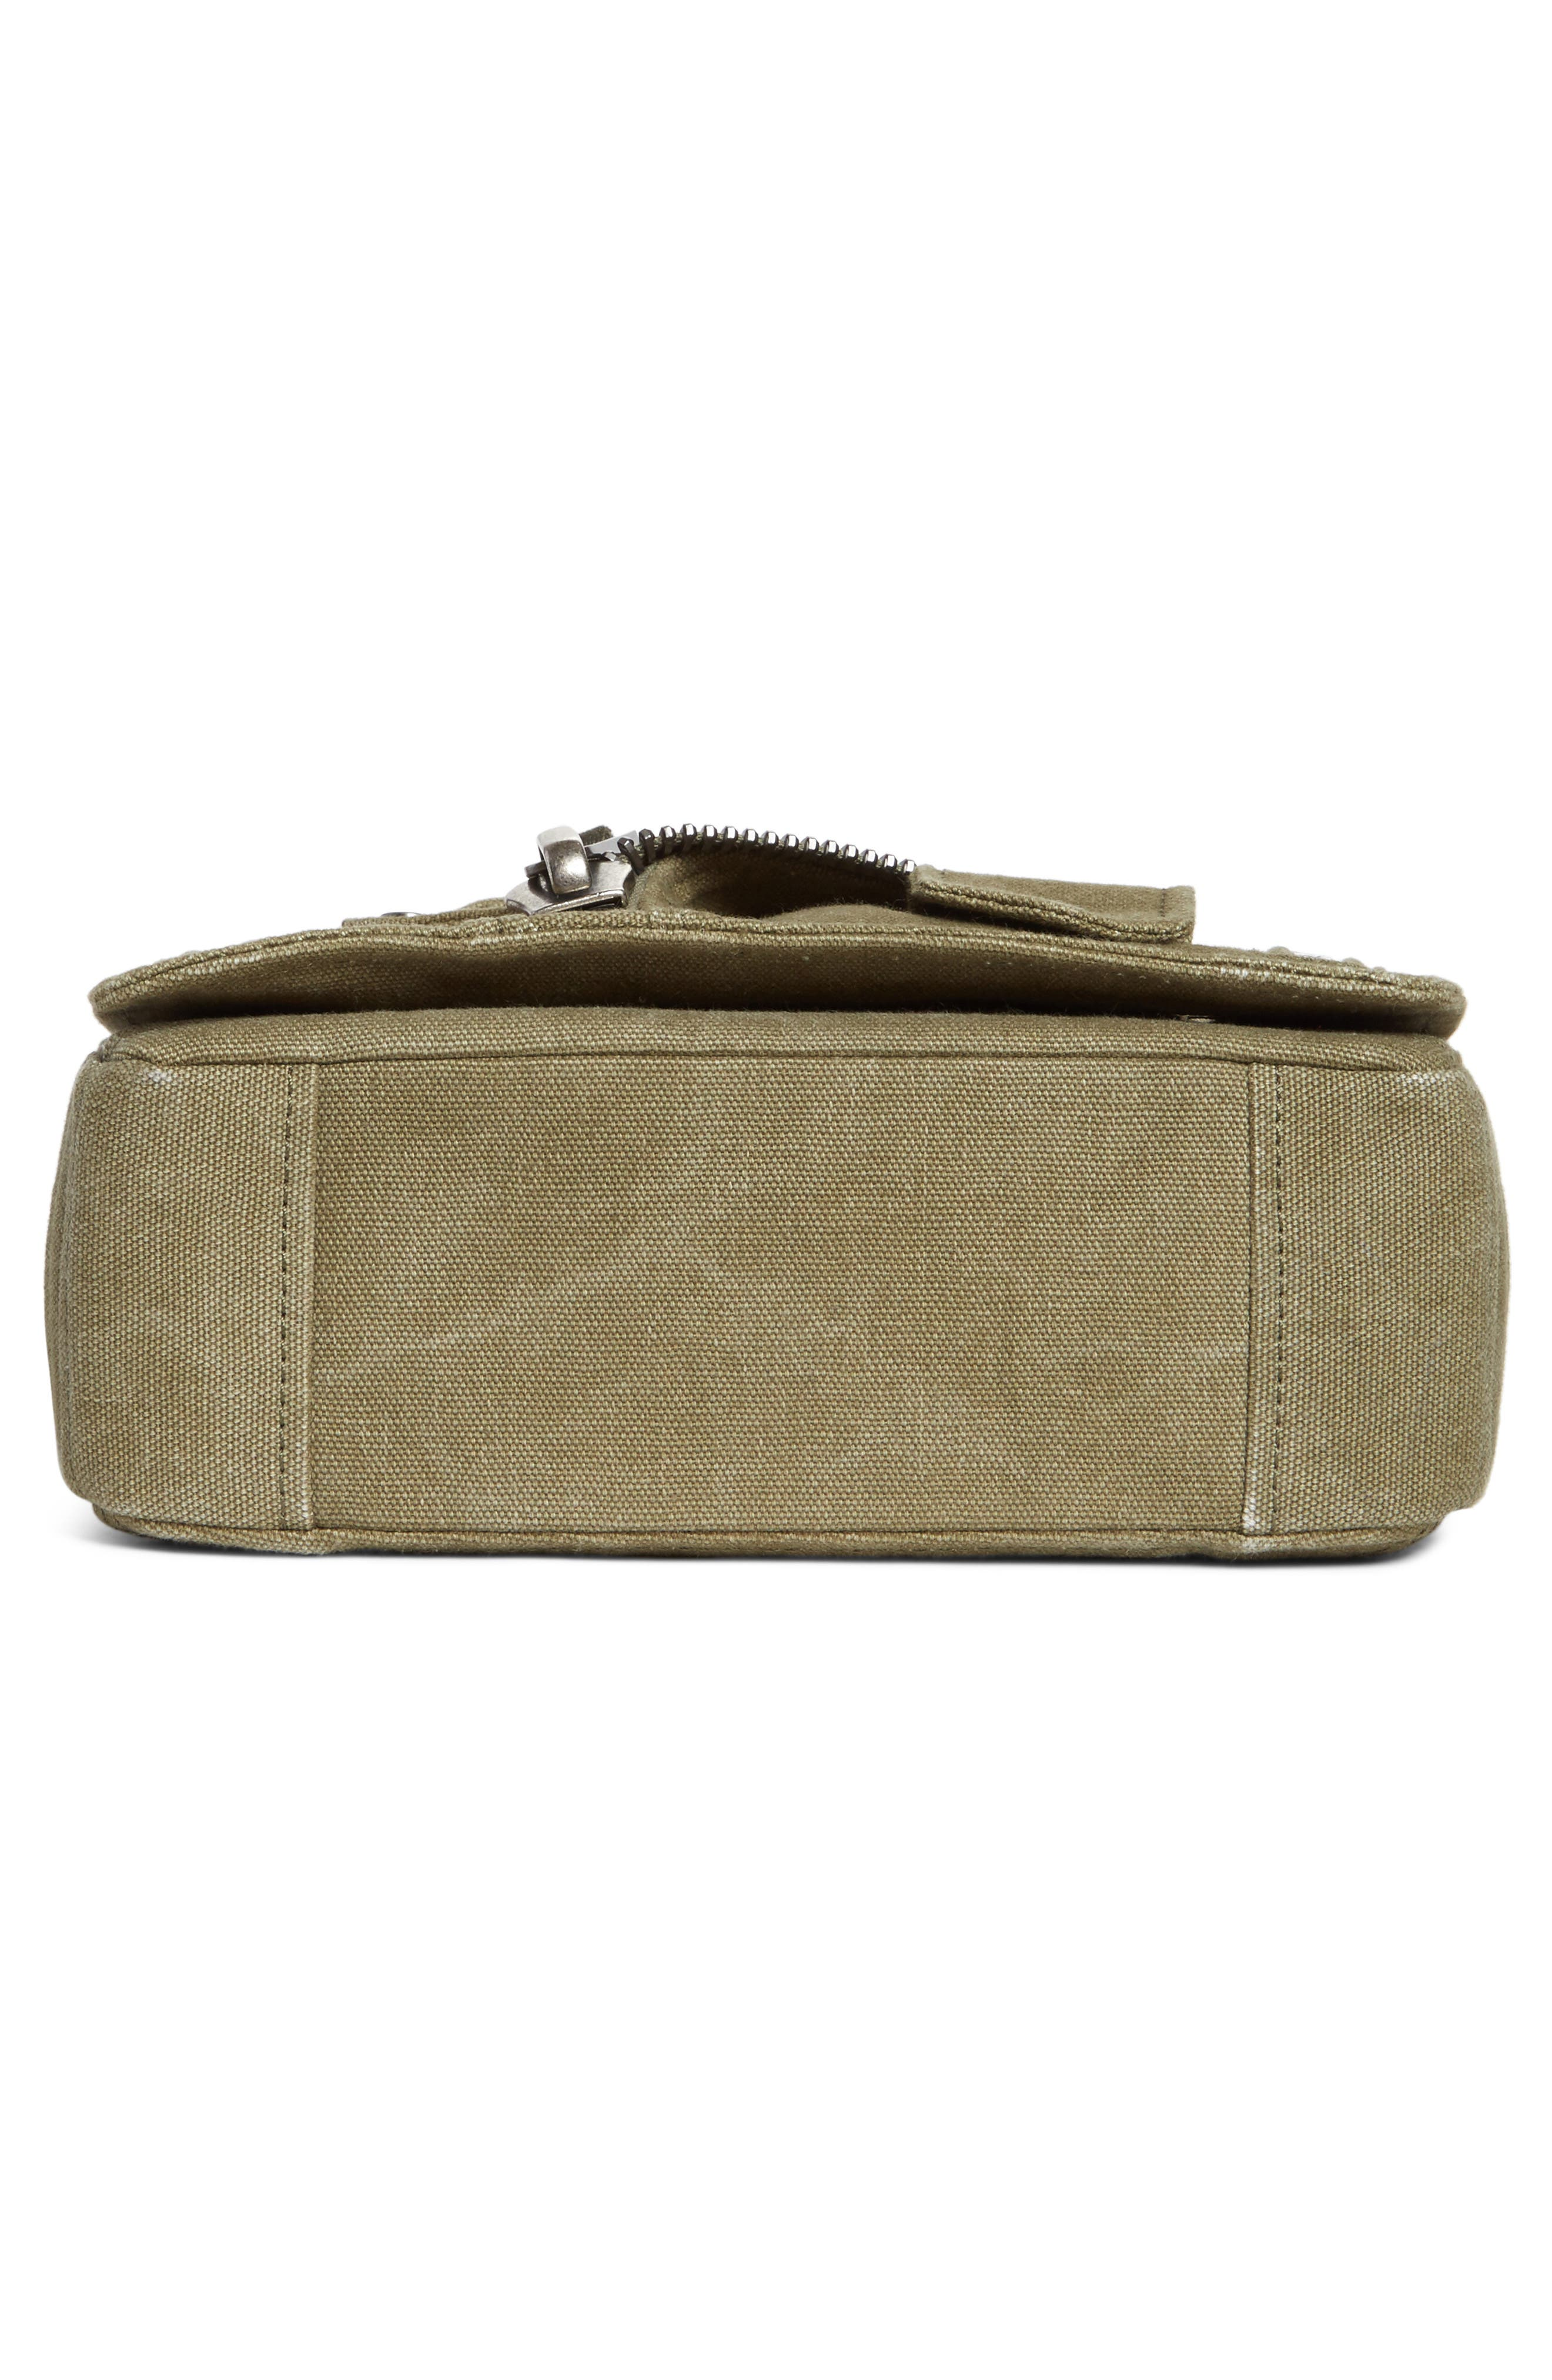 Small Biker Jacket Shoulder Bag,                             Alternate thumbnail 6, color,                             Olive